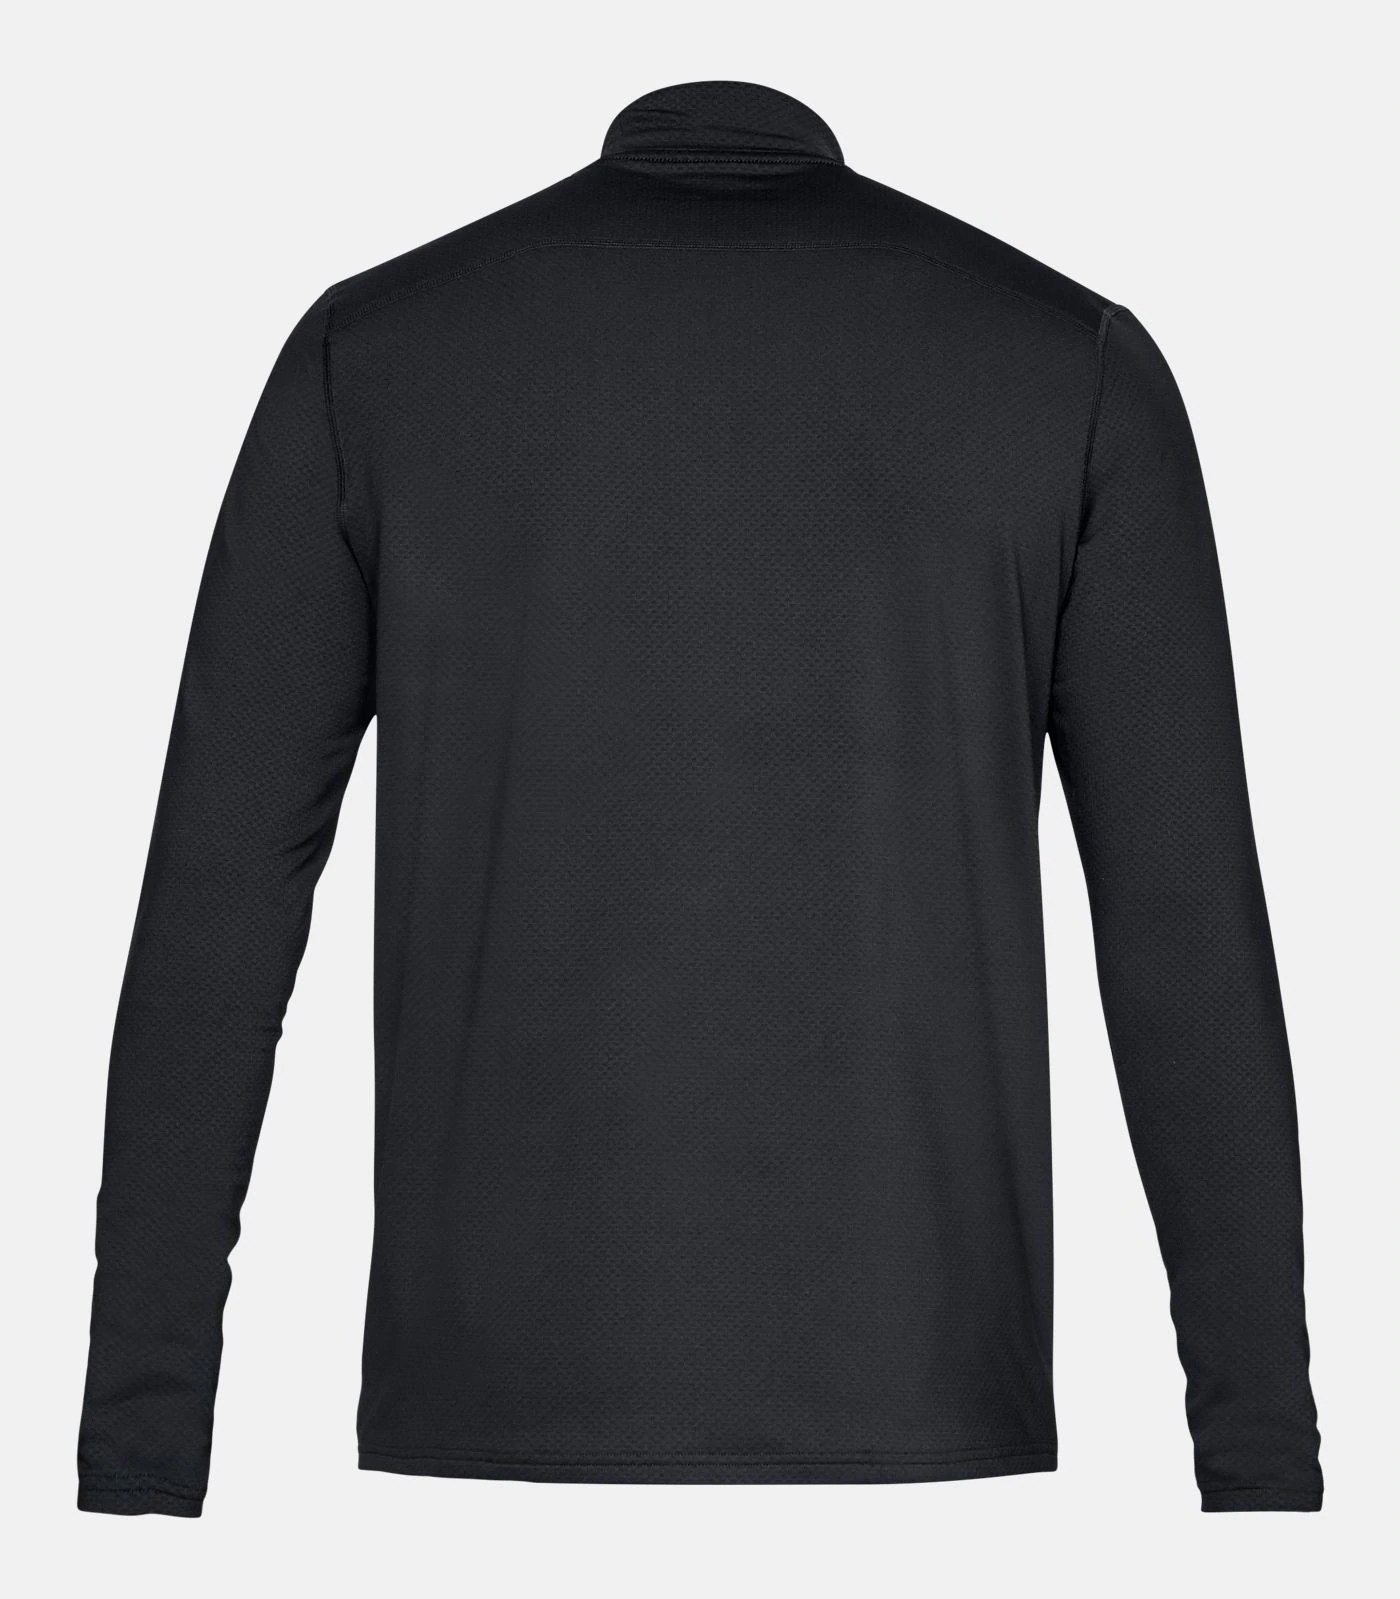 MENS_BASE-LAYERS_ReactorMock_UAR1316935001_05